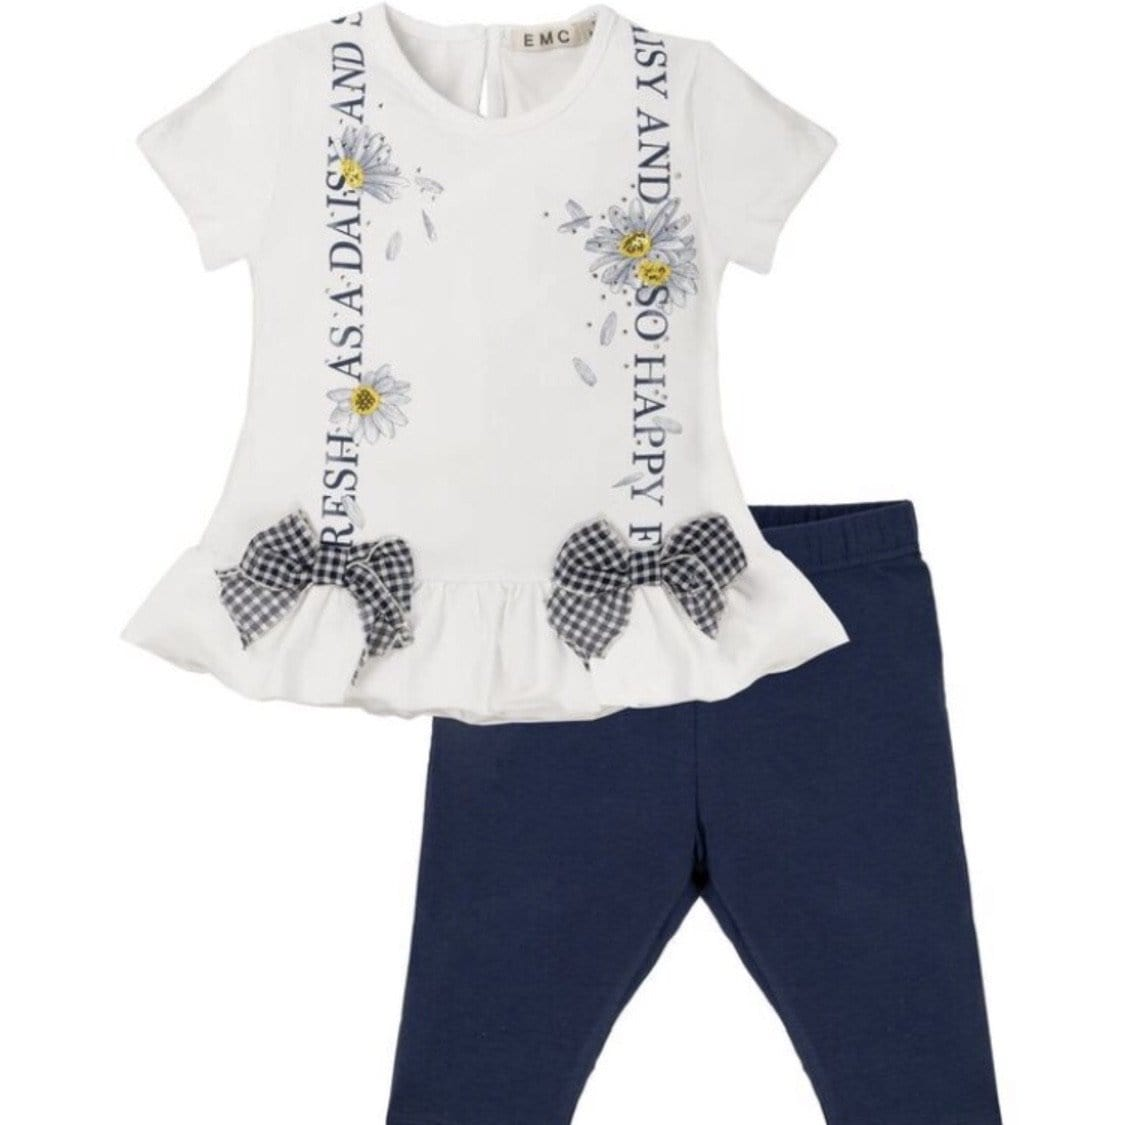 EVERYTHING MUST CHANGE DAISY CHAIN BOW TOP AND LEGGING SET